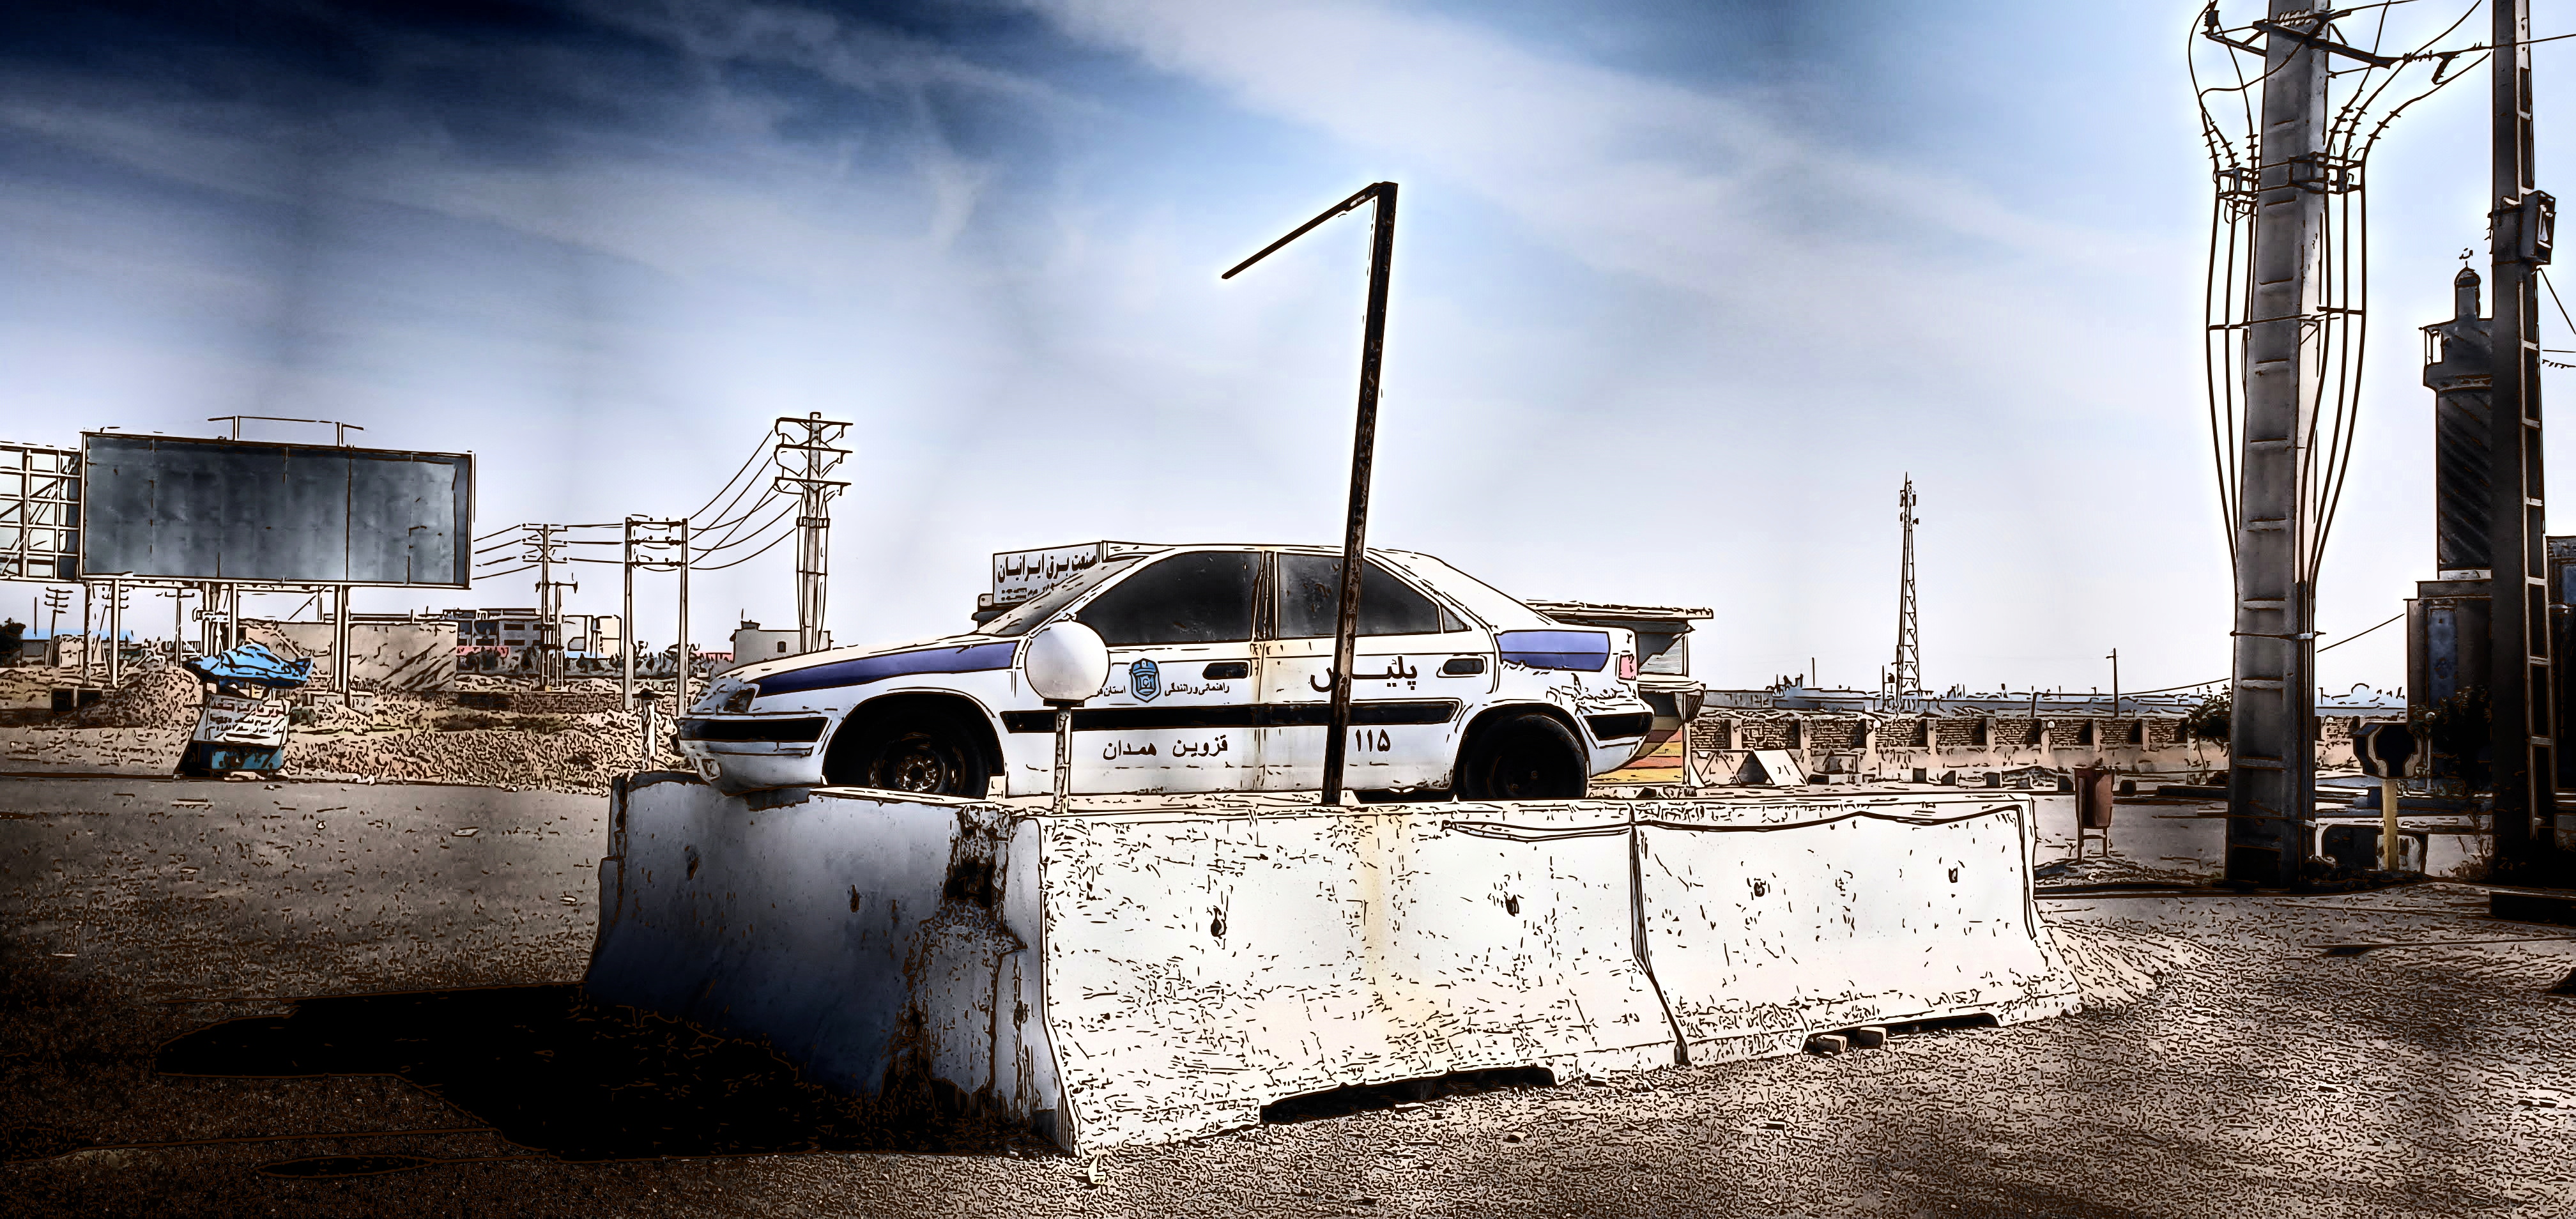 Police car abandoned in Iran as sign